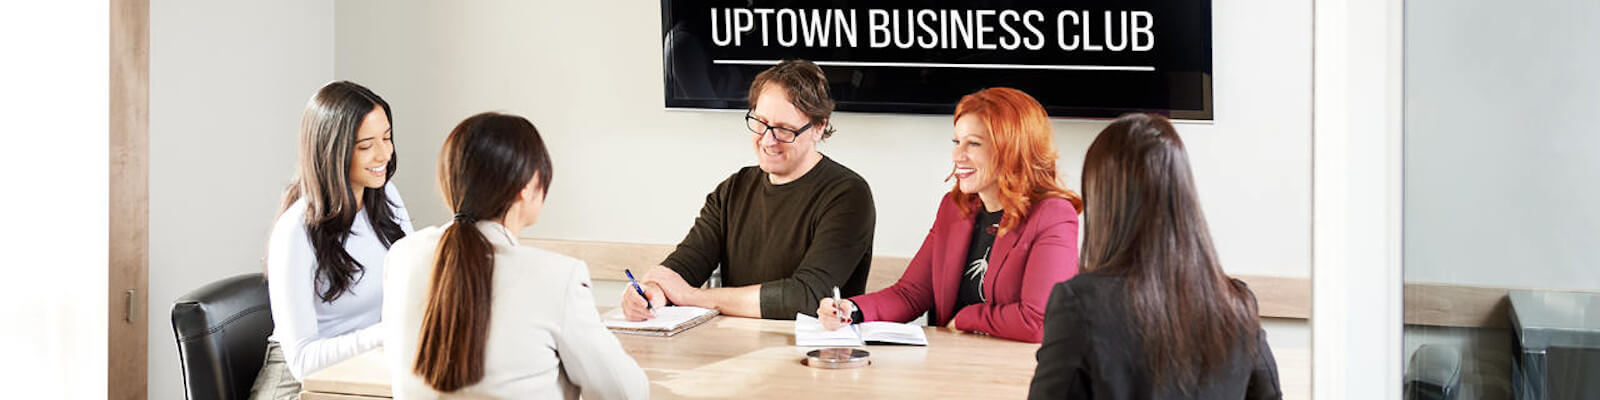 Meeting room rentals at Uptown Business Club in Hamilton, Ontario